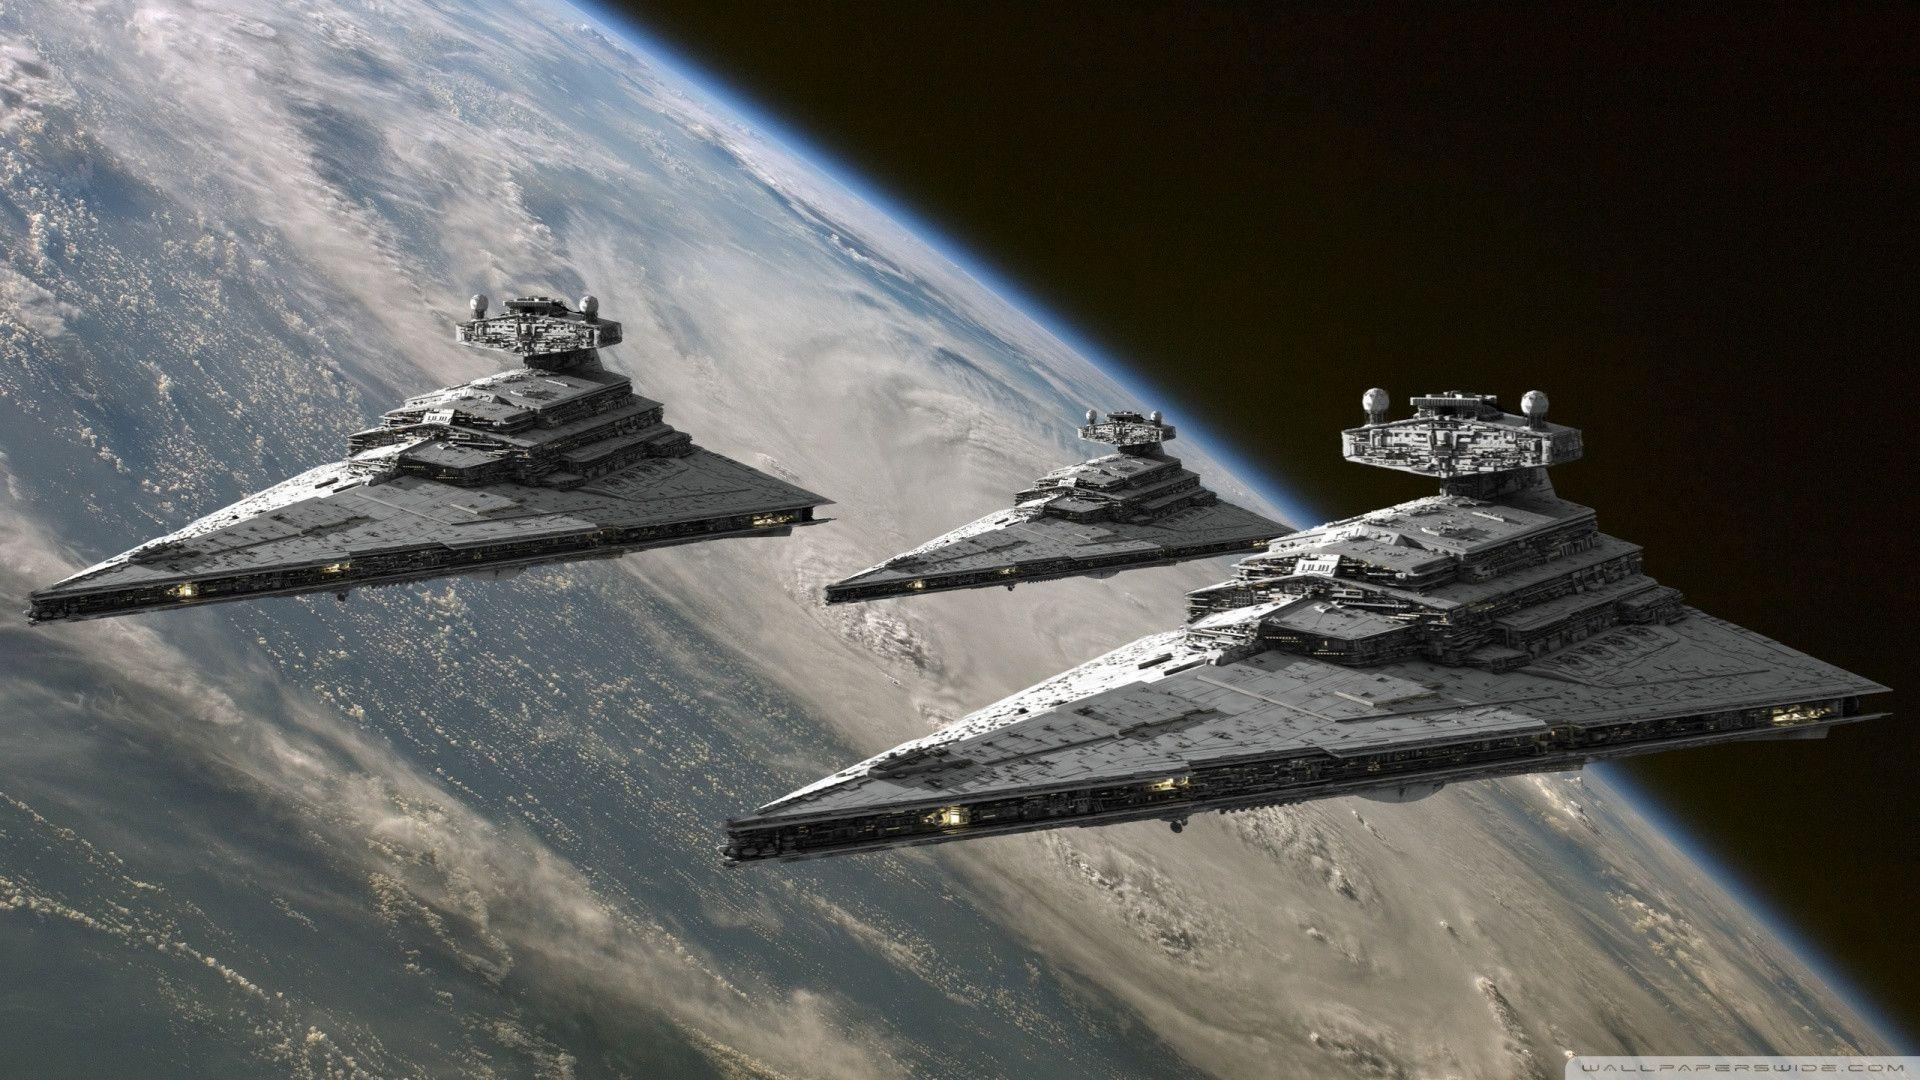 Imperial Star Destroyer wallpaper - 883415